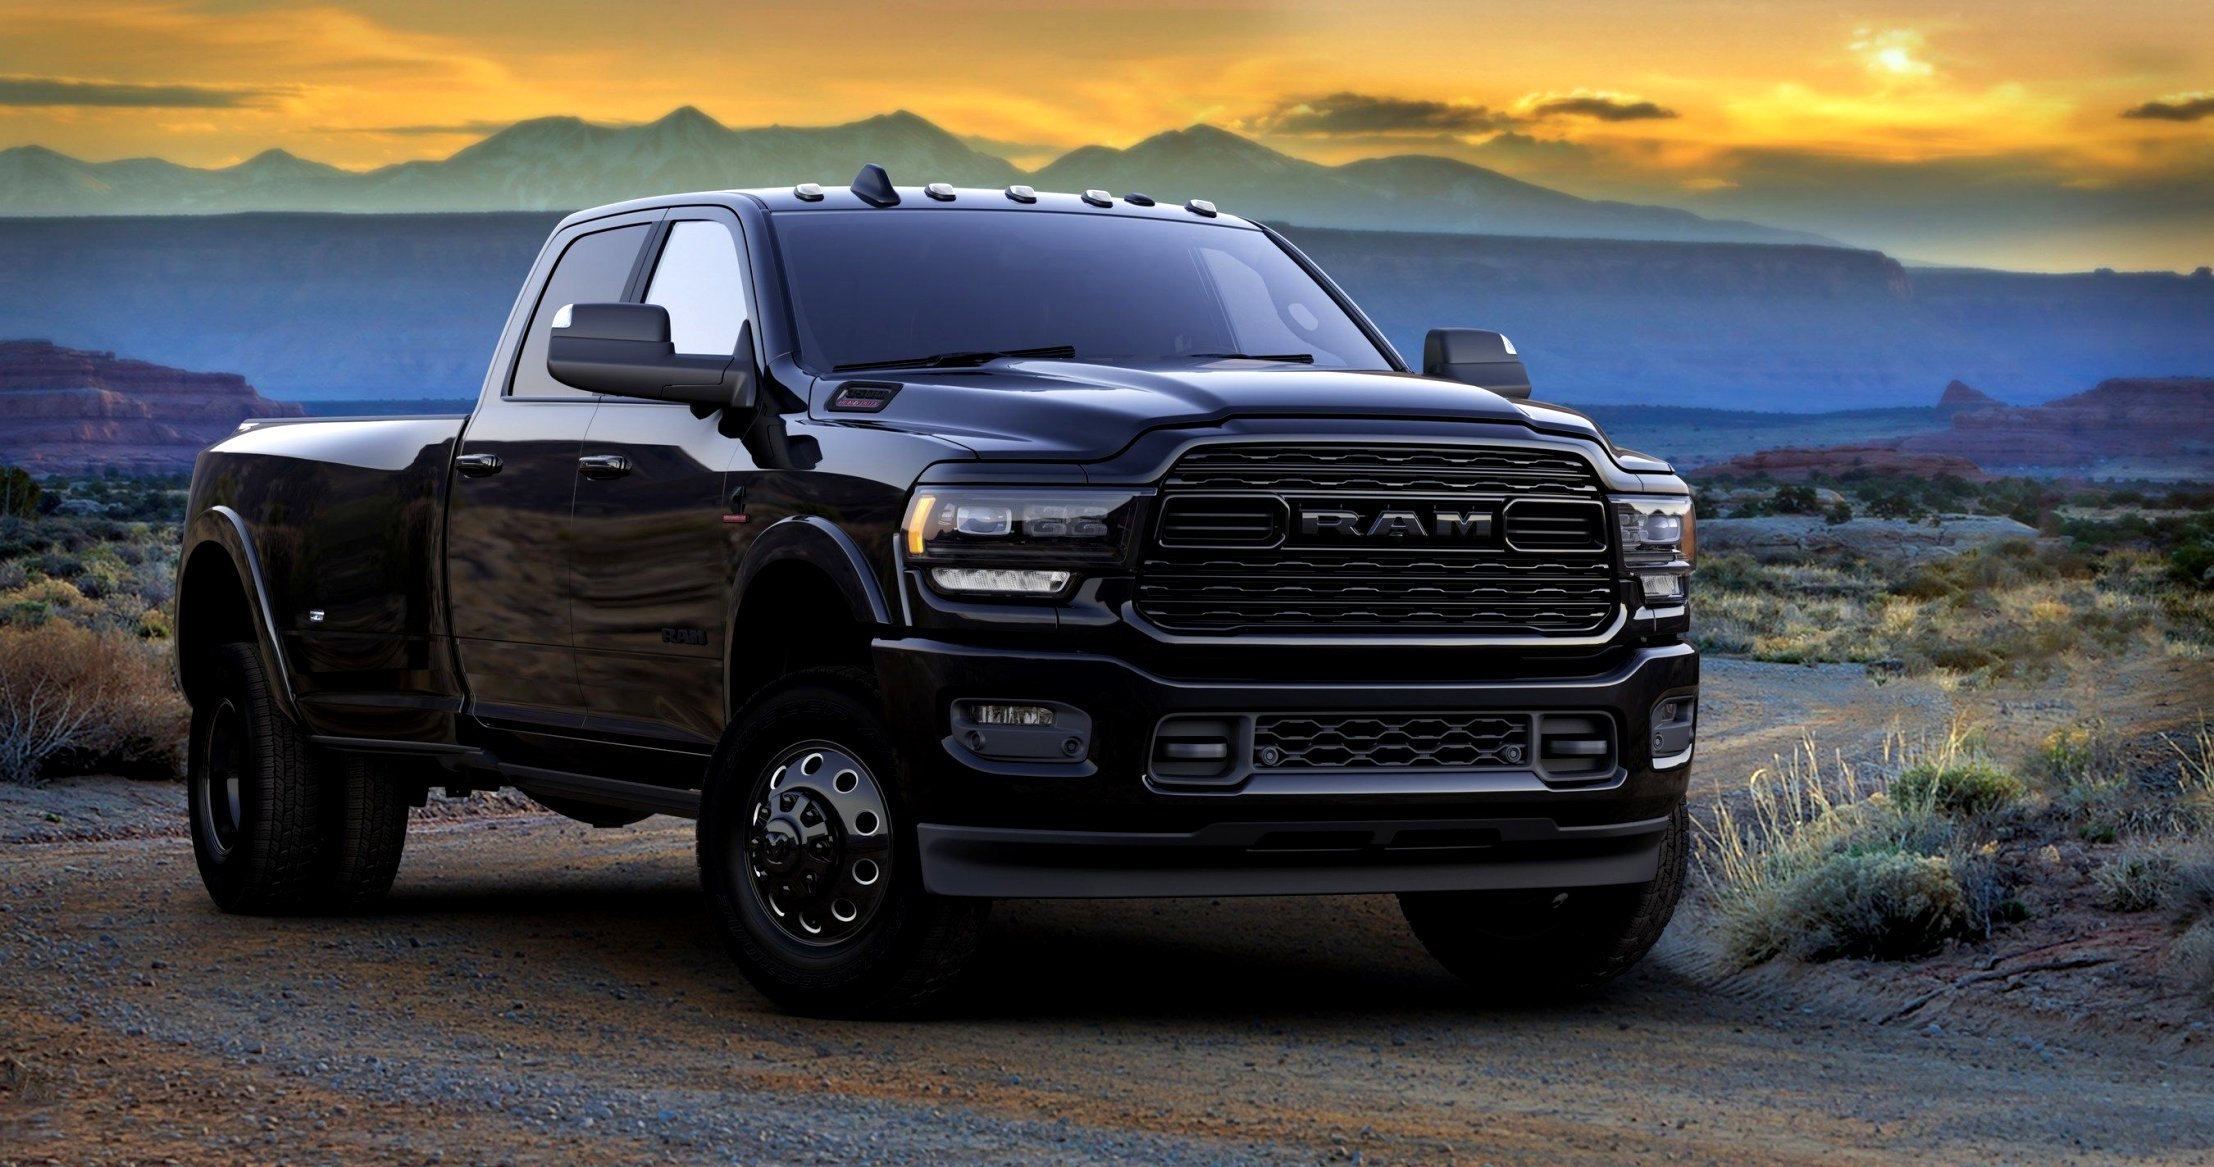 2020 dodge limited Research New